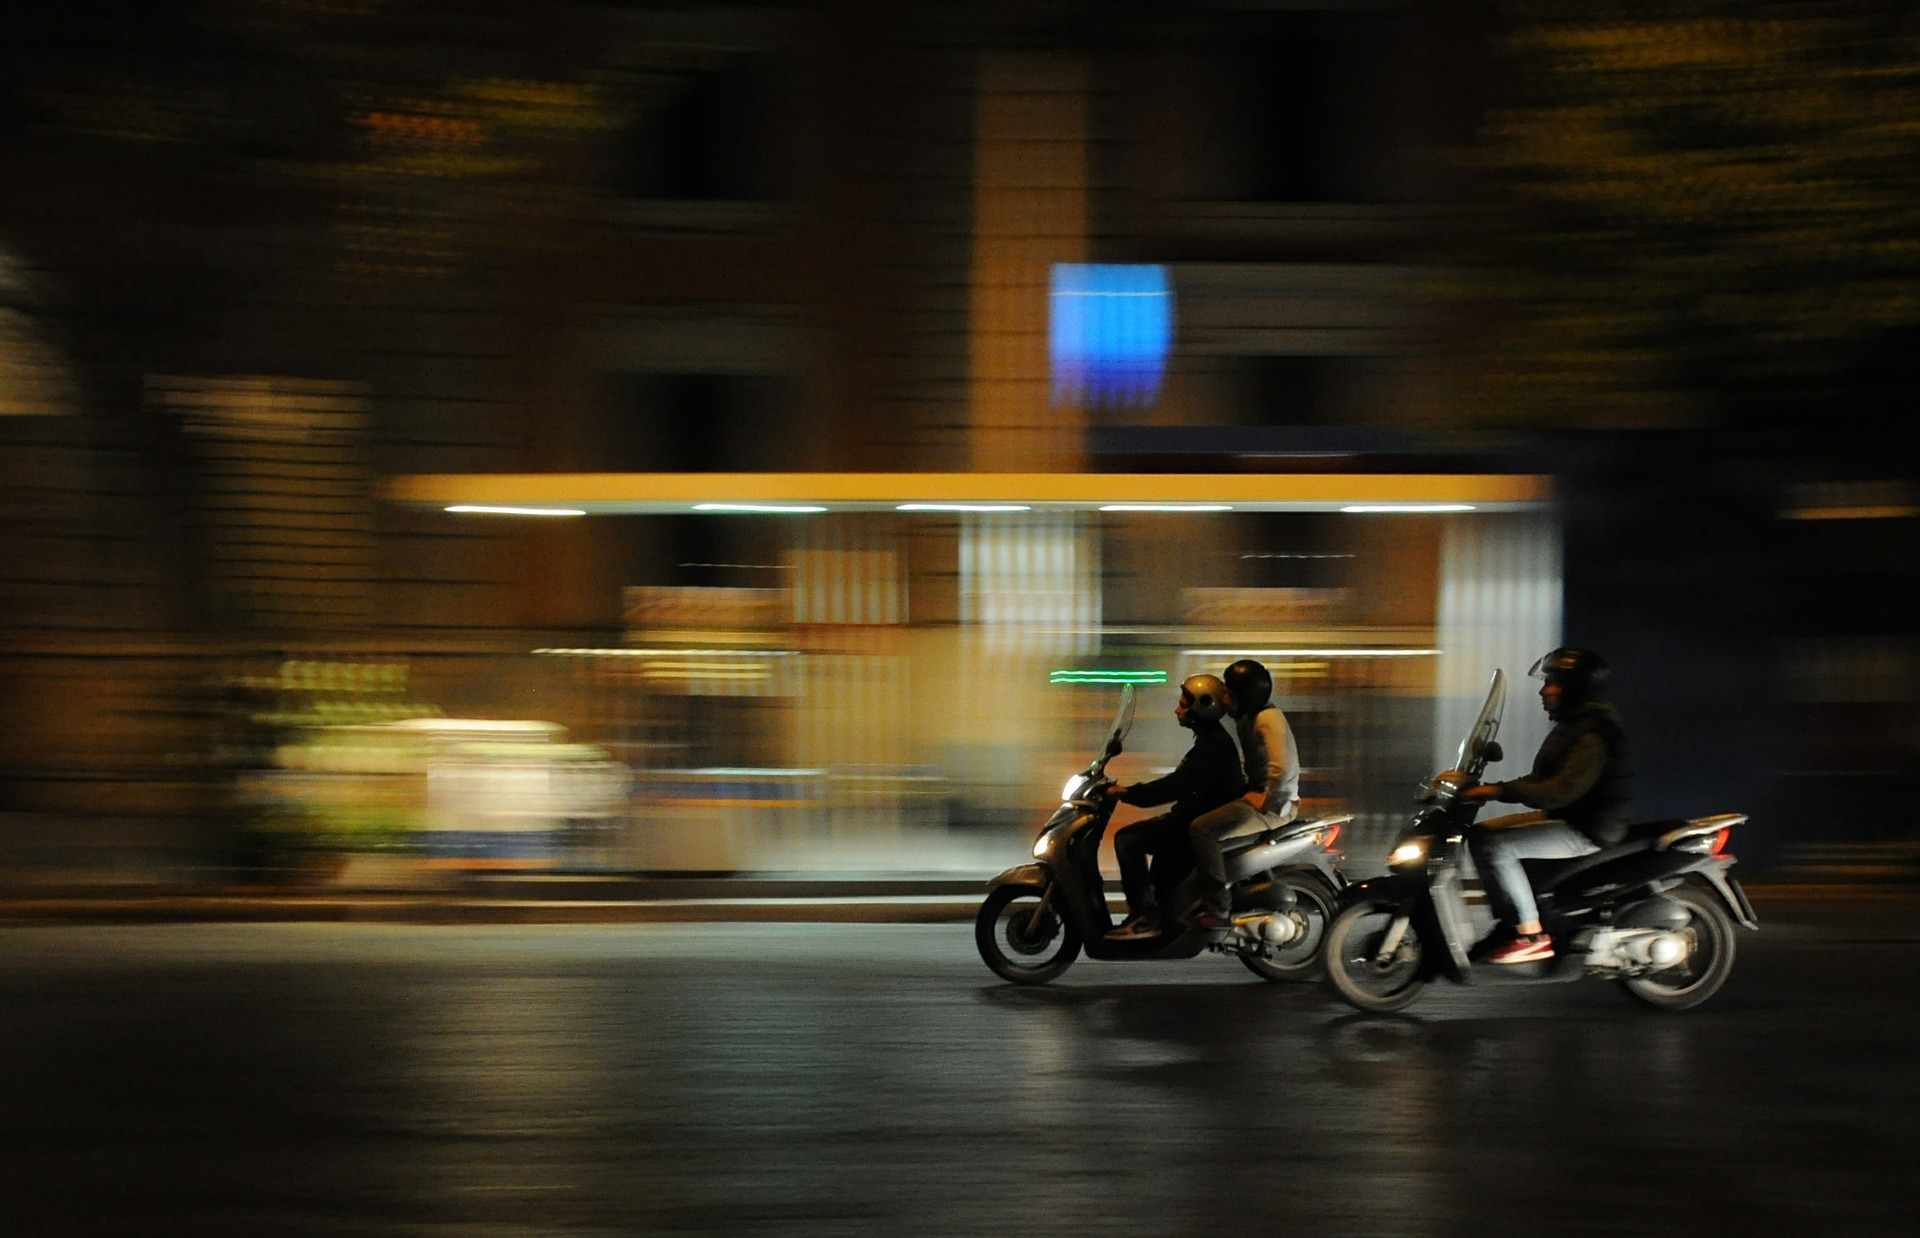 scooters-384560_1920